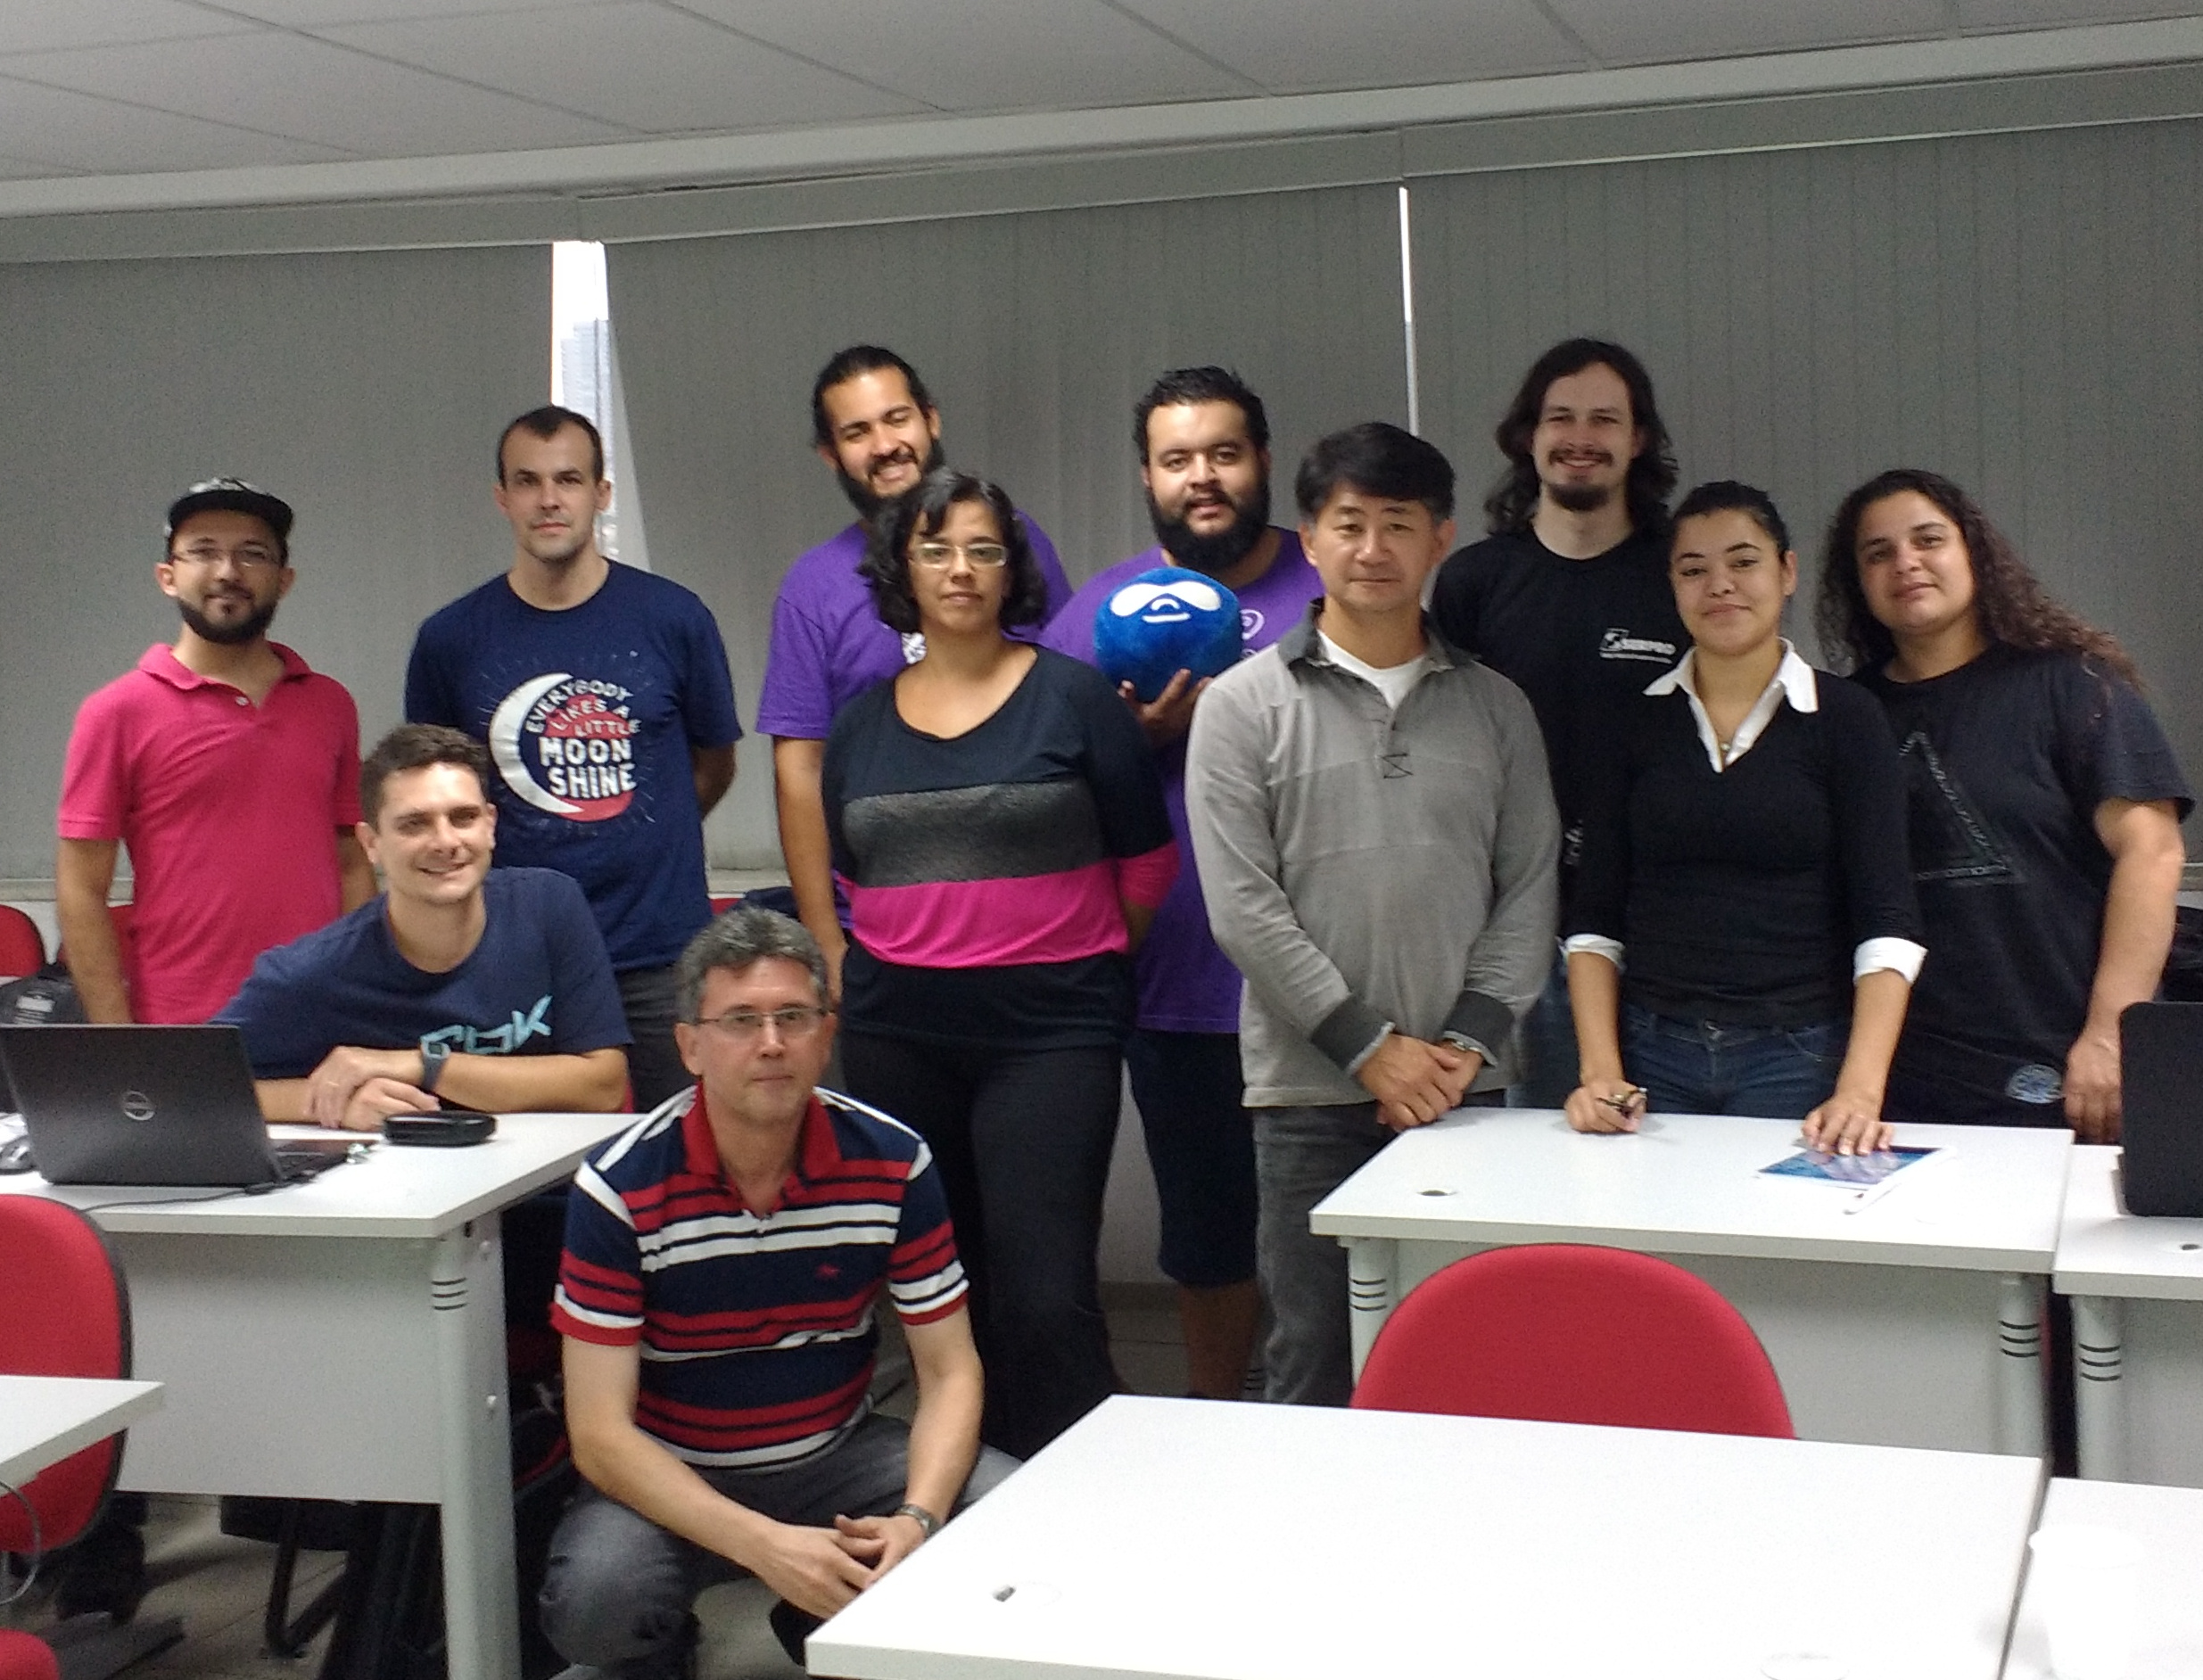 Foto com os participantes do drupal globay training day 2016